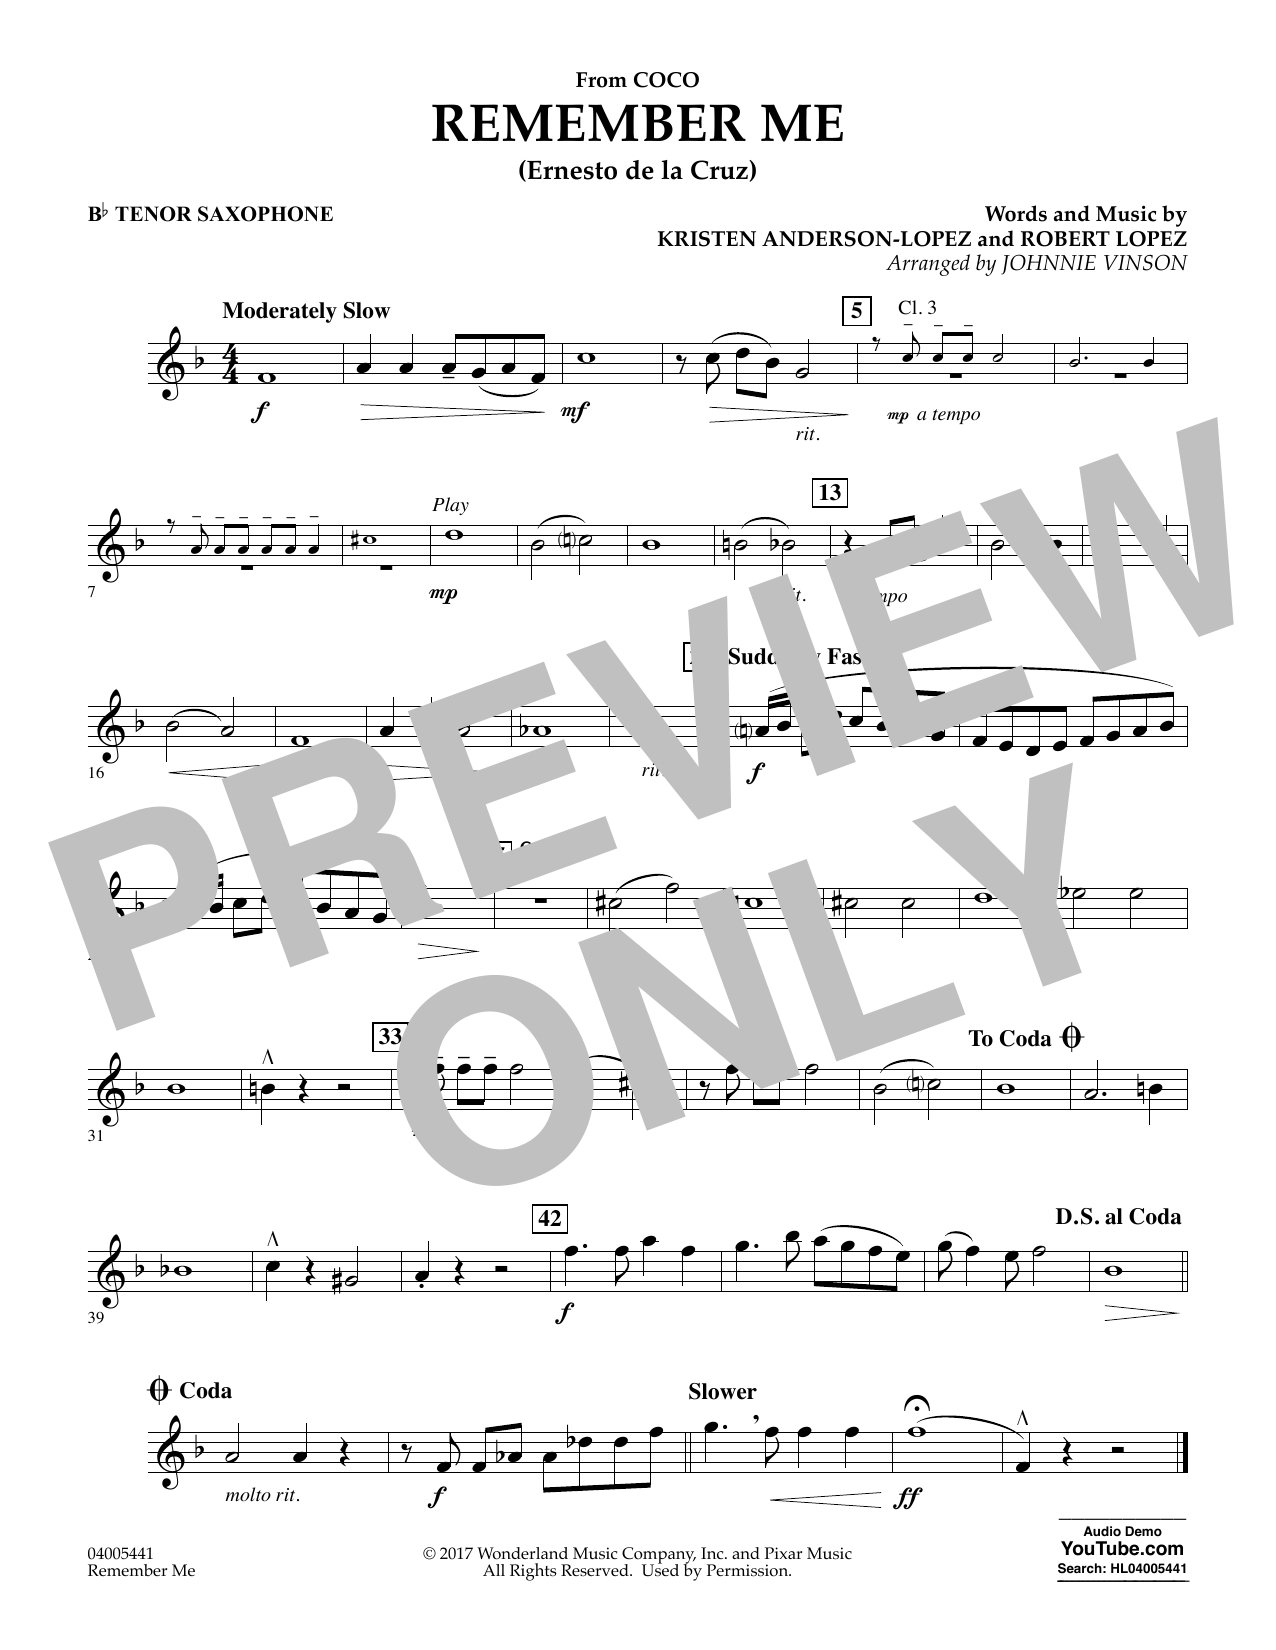 Kristen Anderson-Lopez & Robert Lopez Remember Me (from Coco) (arr. Johnnie Vinson) - Bb Tenor Saxophone sheet music preview music notes and score for Concert Band including 1 page(s)